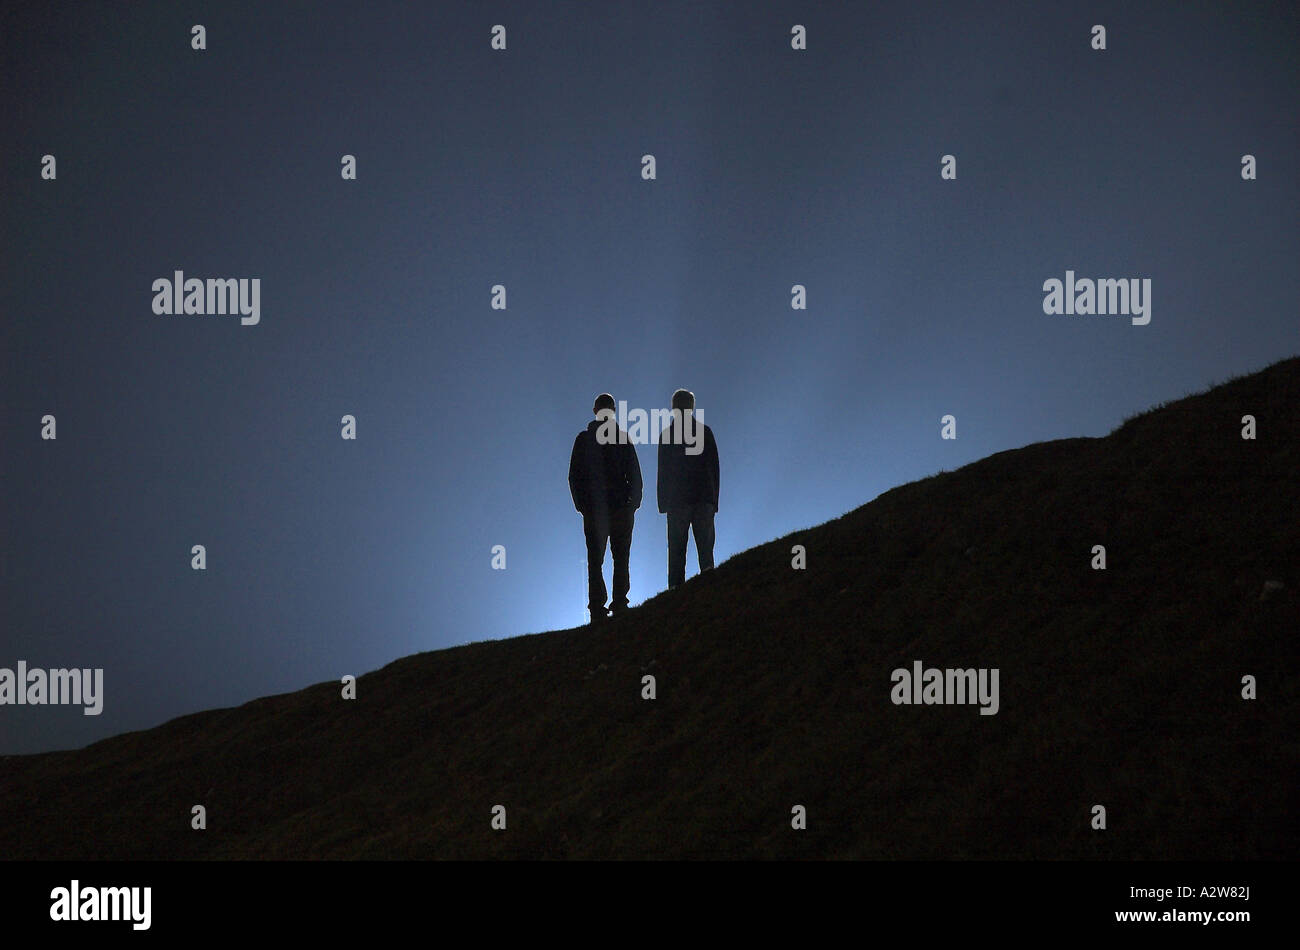 sci-fi silhouette of two humans - Stock Image